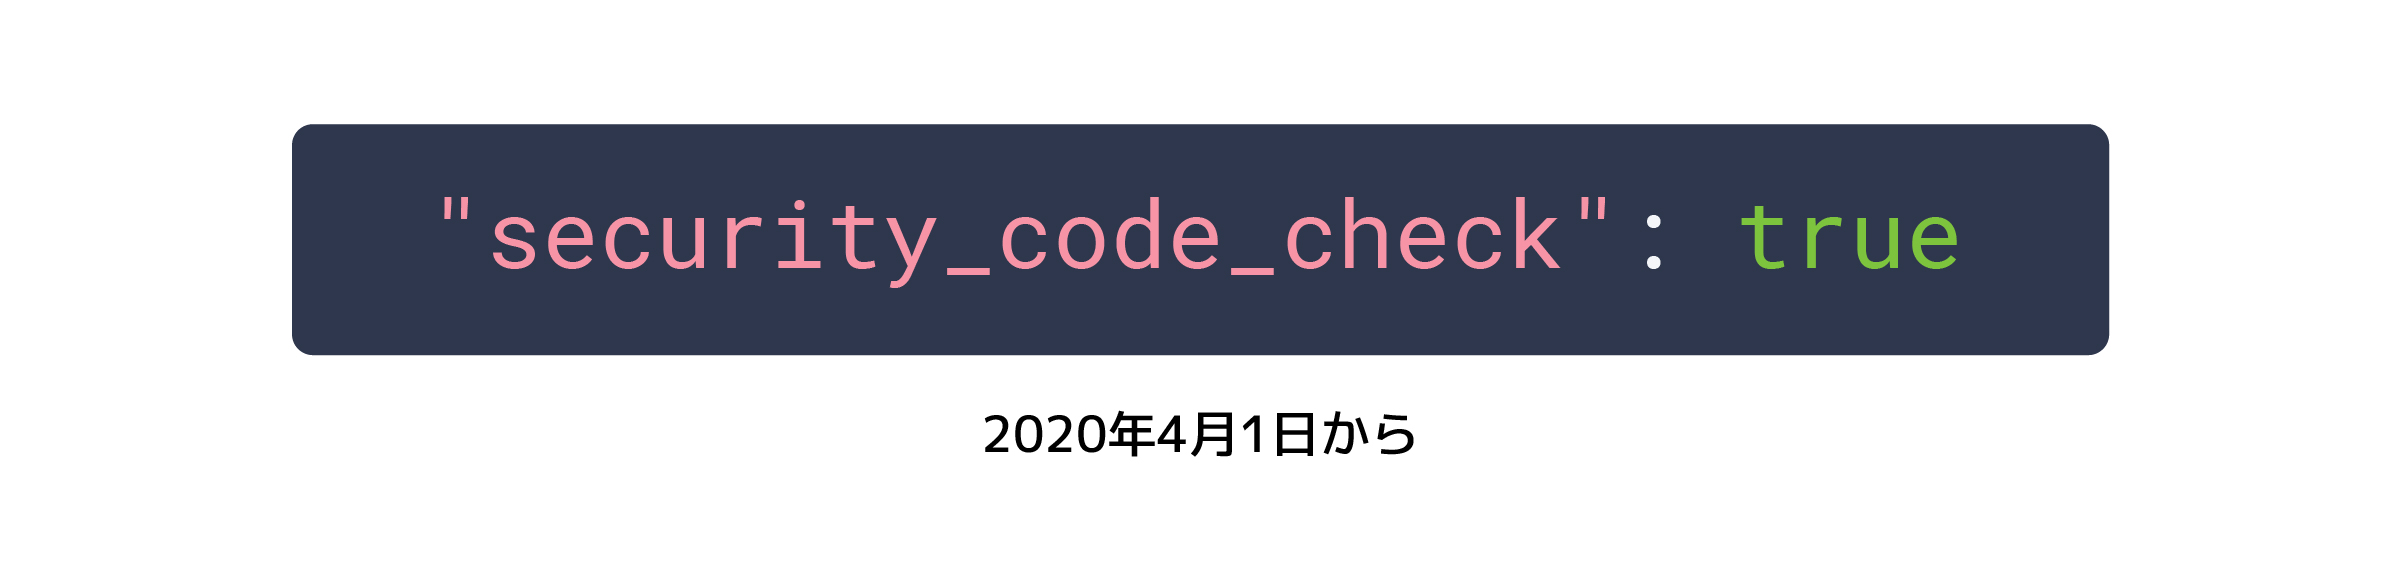 Security code check value